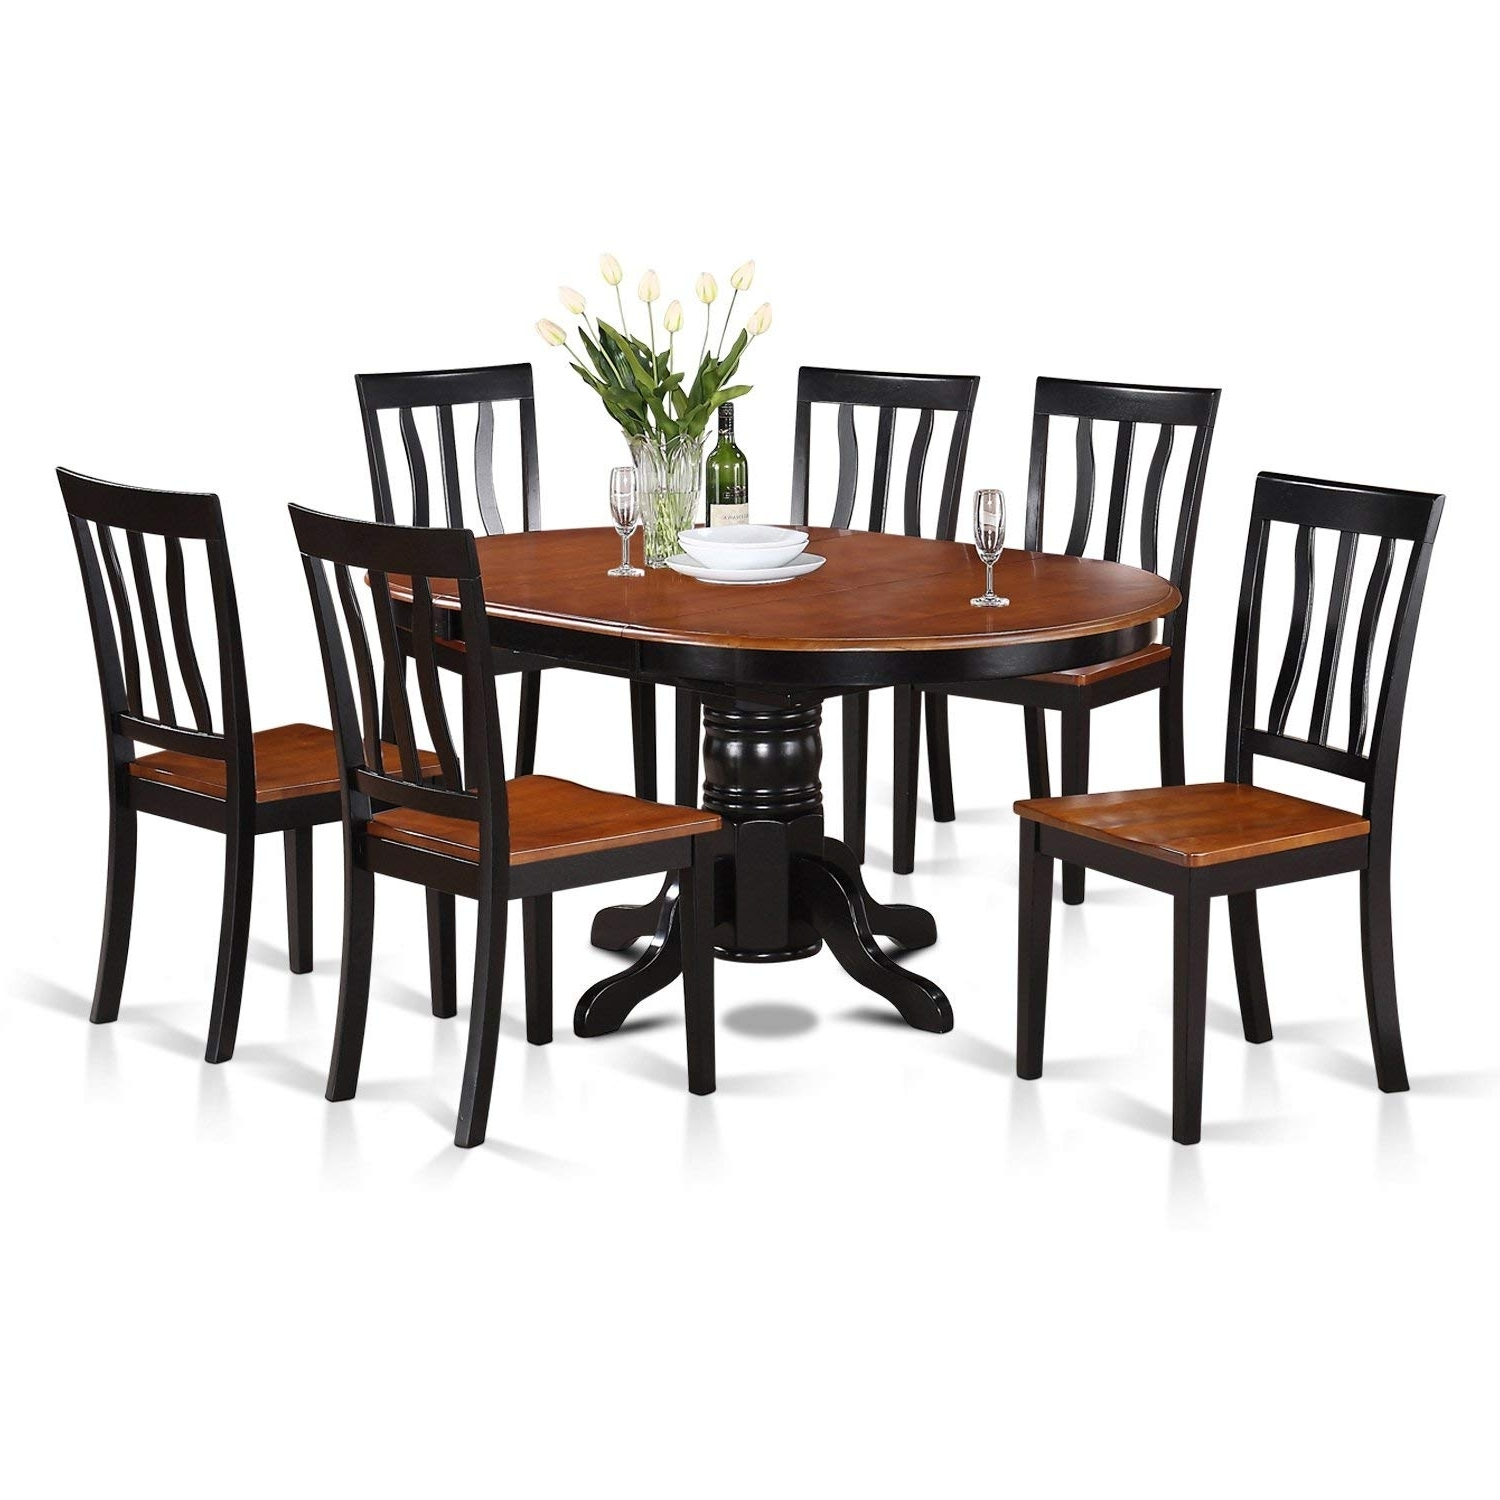 Well Liked Amazon: East West Furniture Avat7 Blk W 7 Piece Dining Table Set Inside Craftsman 7 Piece Rectangle Extension Dining Sets With Uph Side Chairs (View 3 of 25)